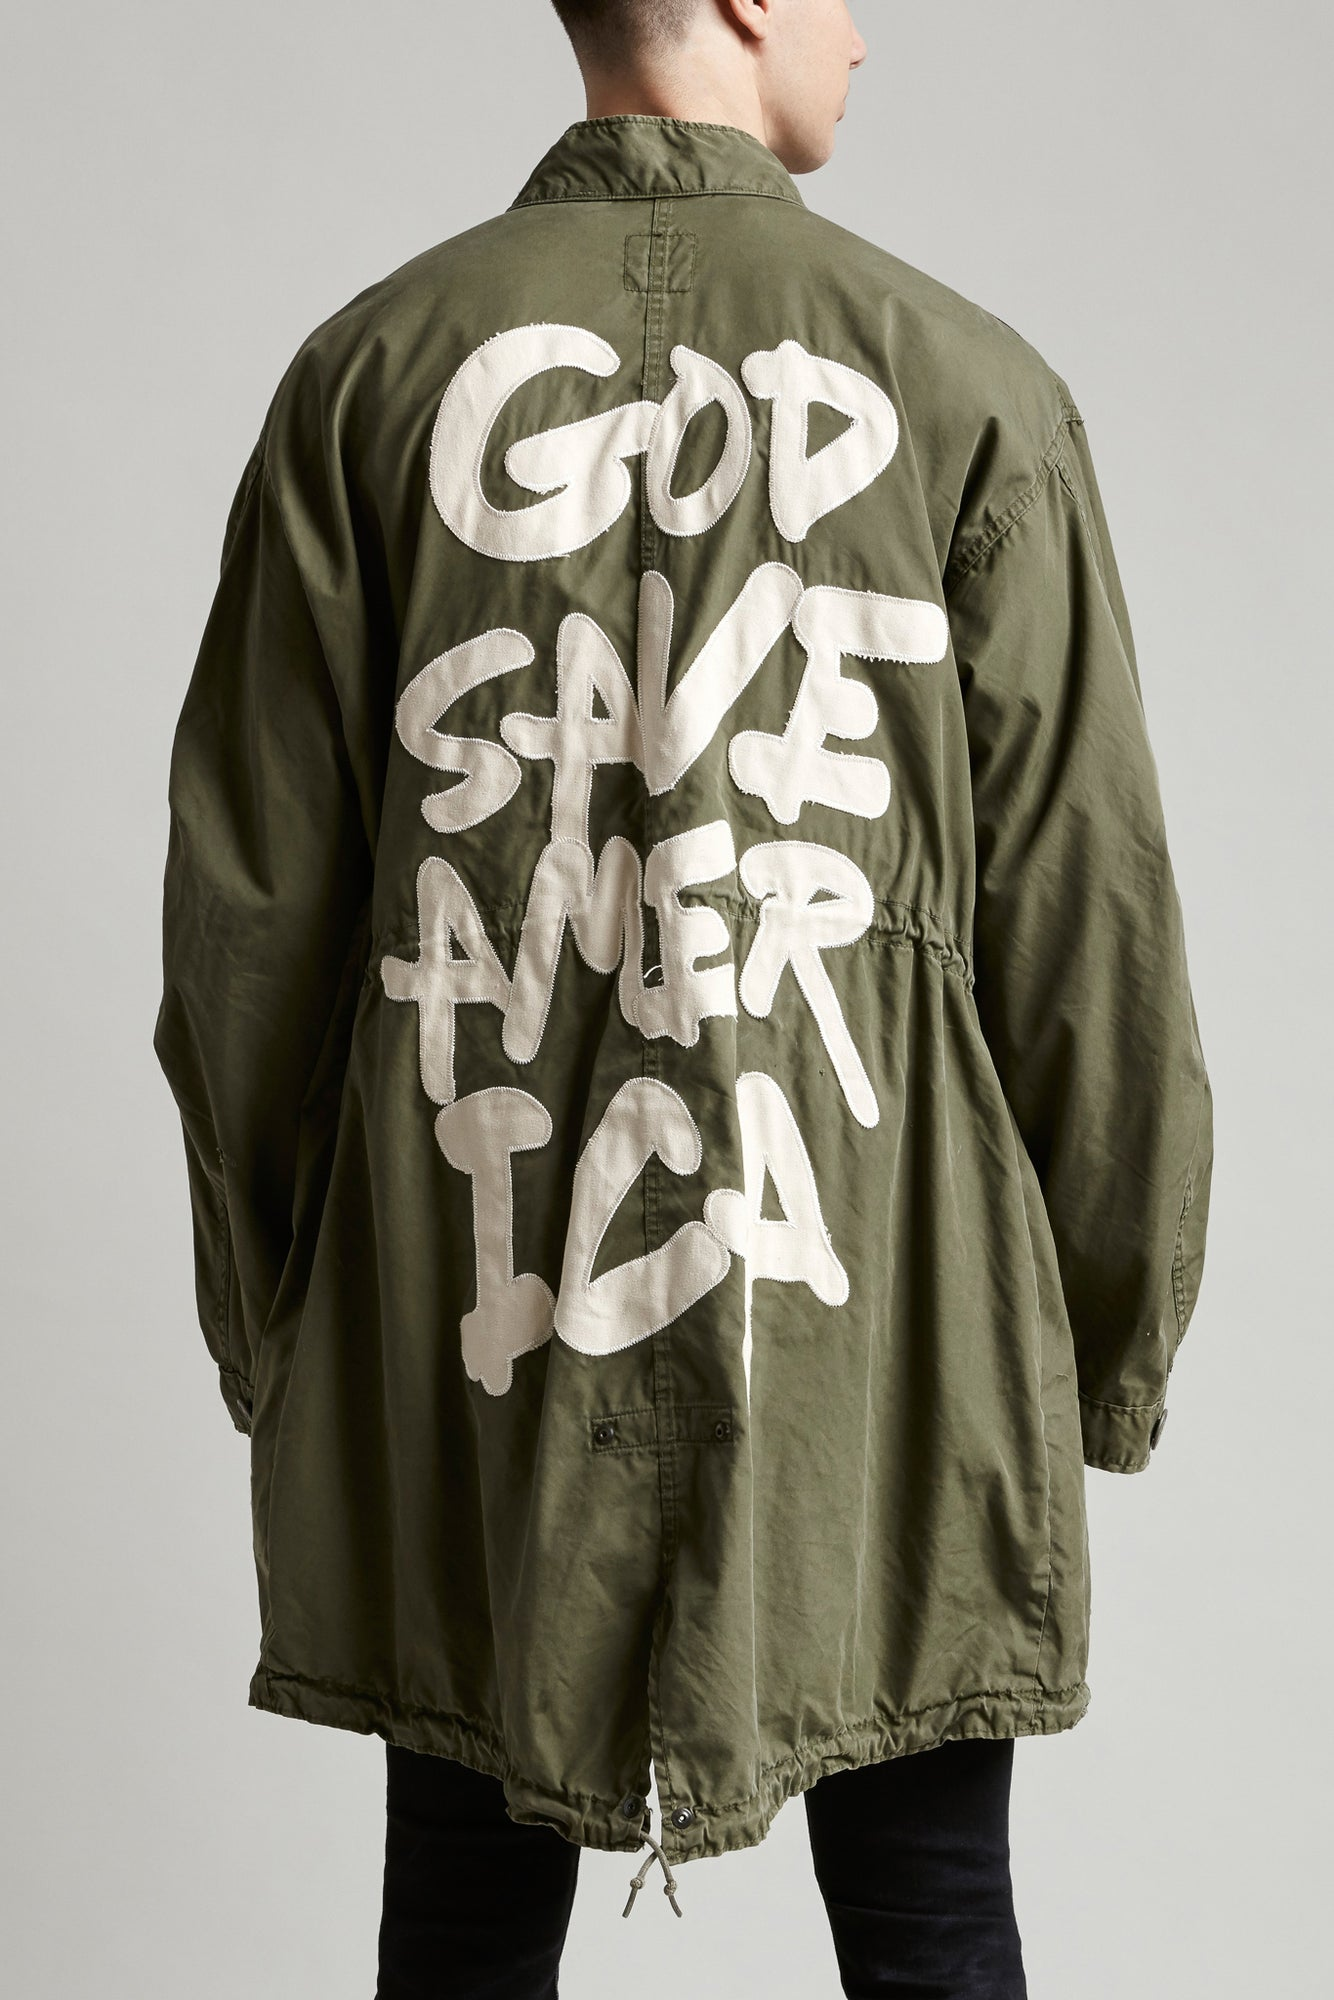 God Save America Fishtail Coat - Olive